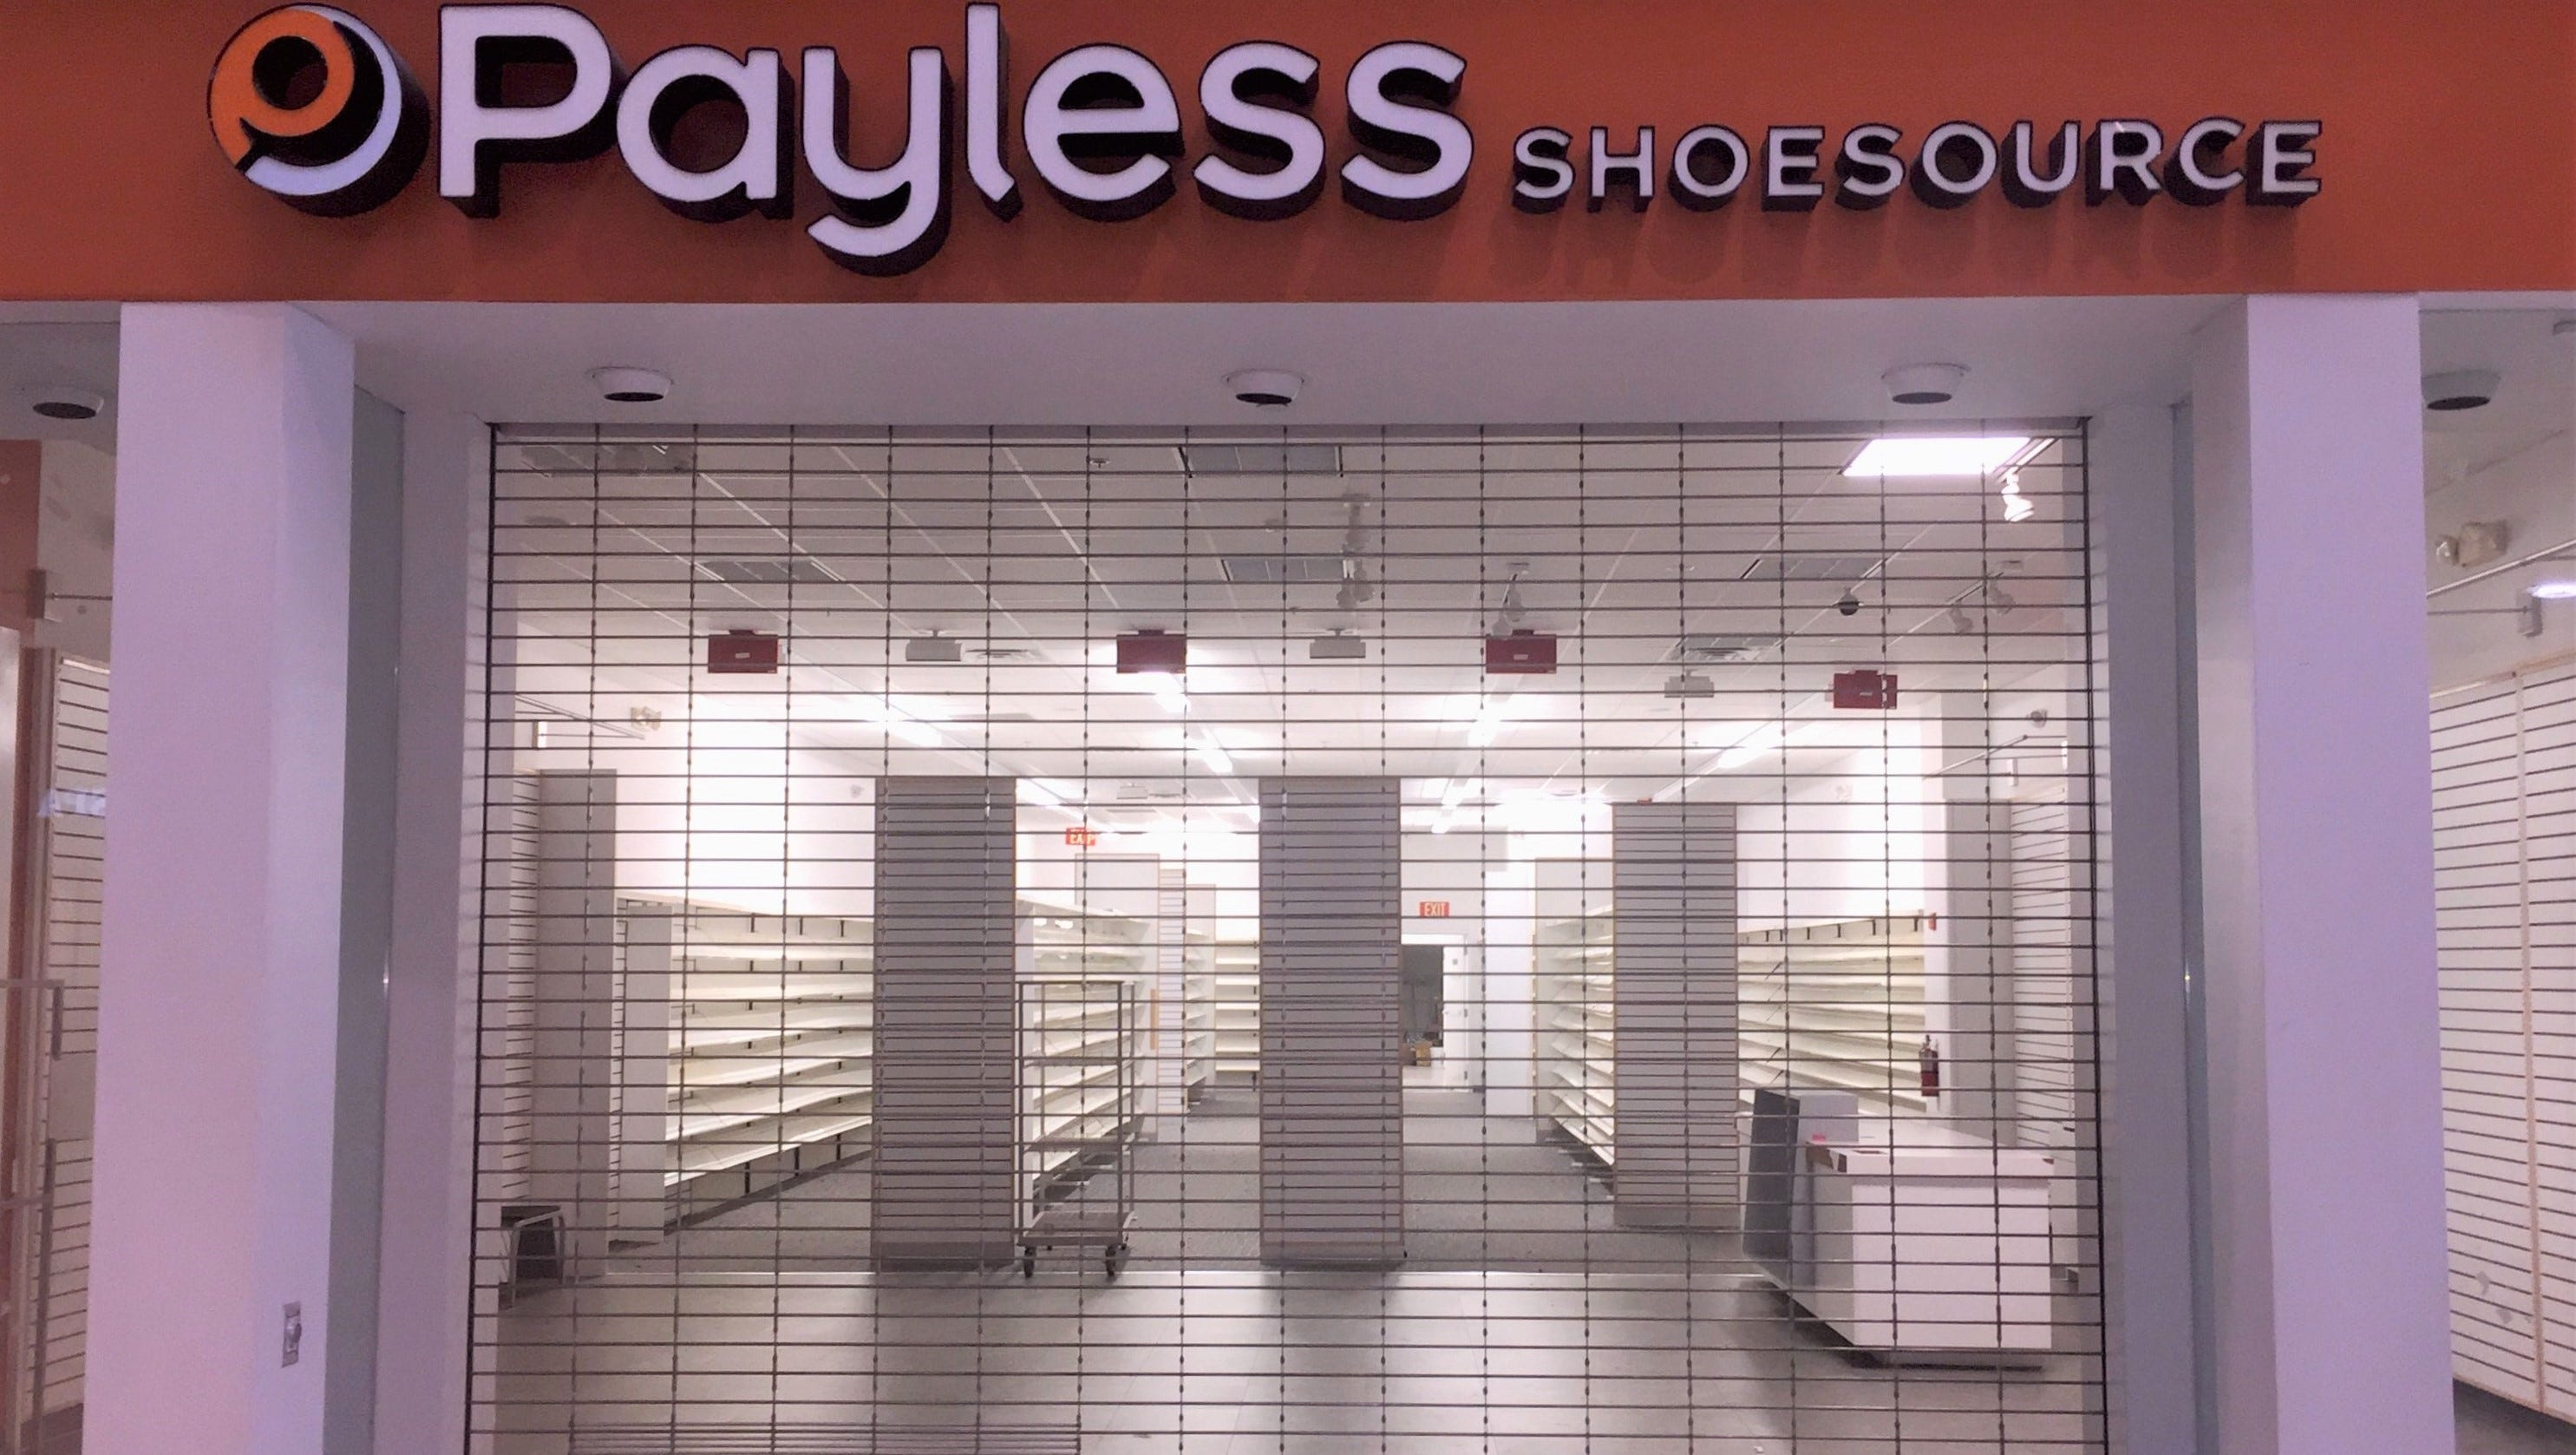 Payless gift cards better be used soon by shoe buyers, NJ warns